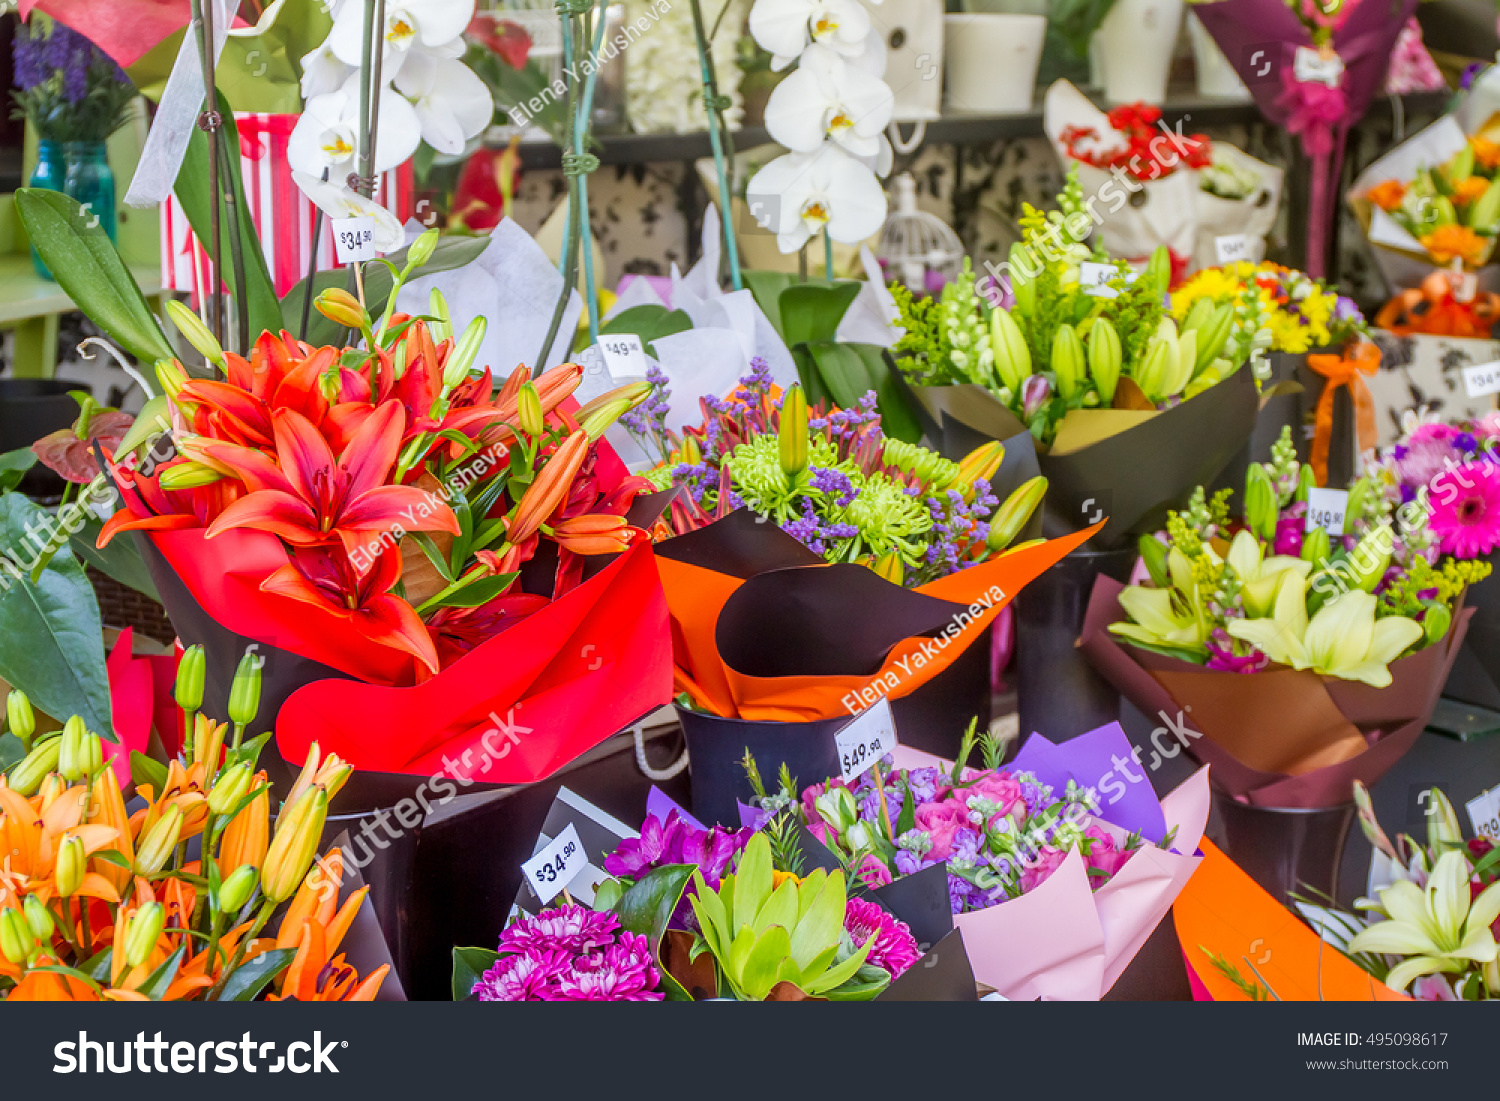 Flower Market Miscellaneous Colored Flowers On Stock Photo (Edit Now ...